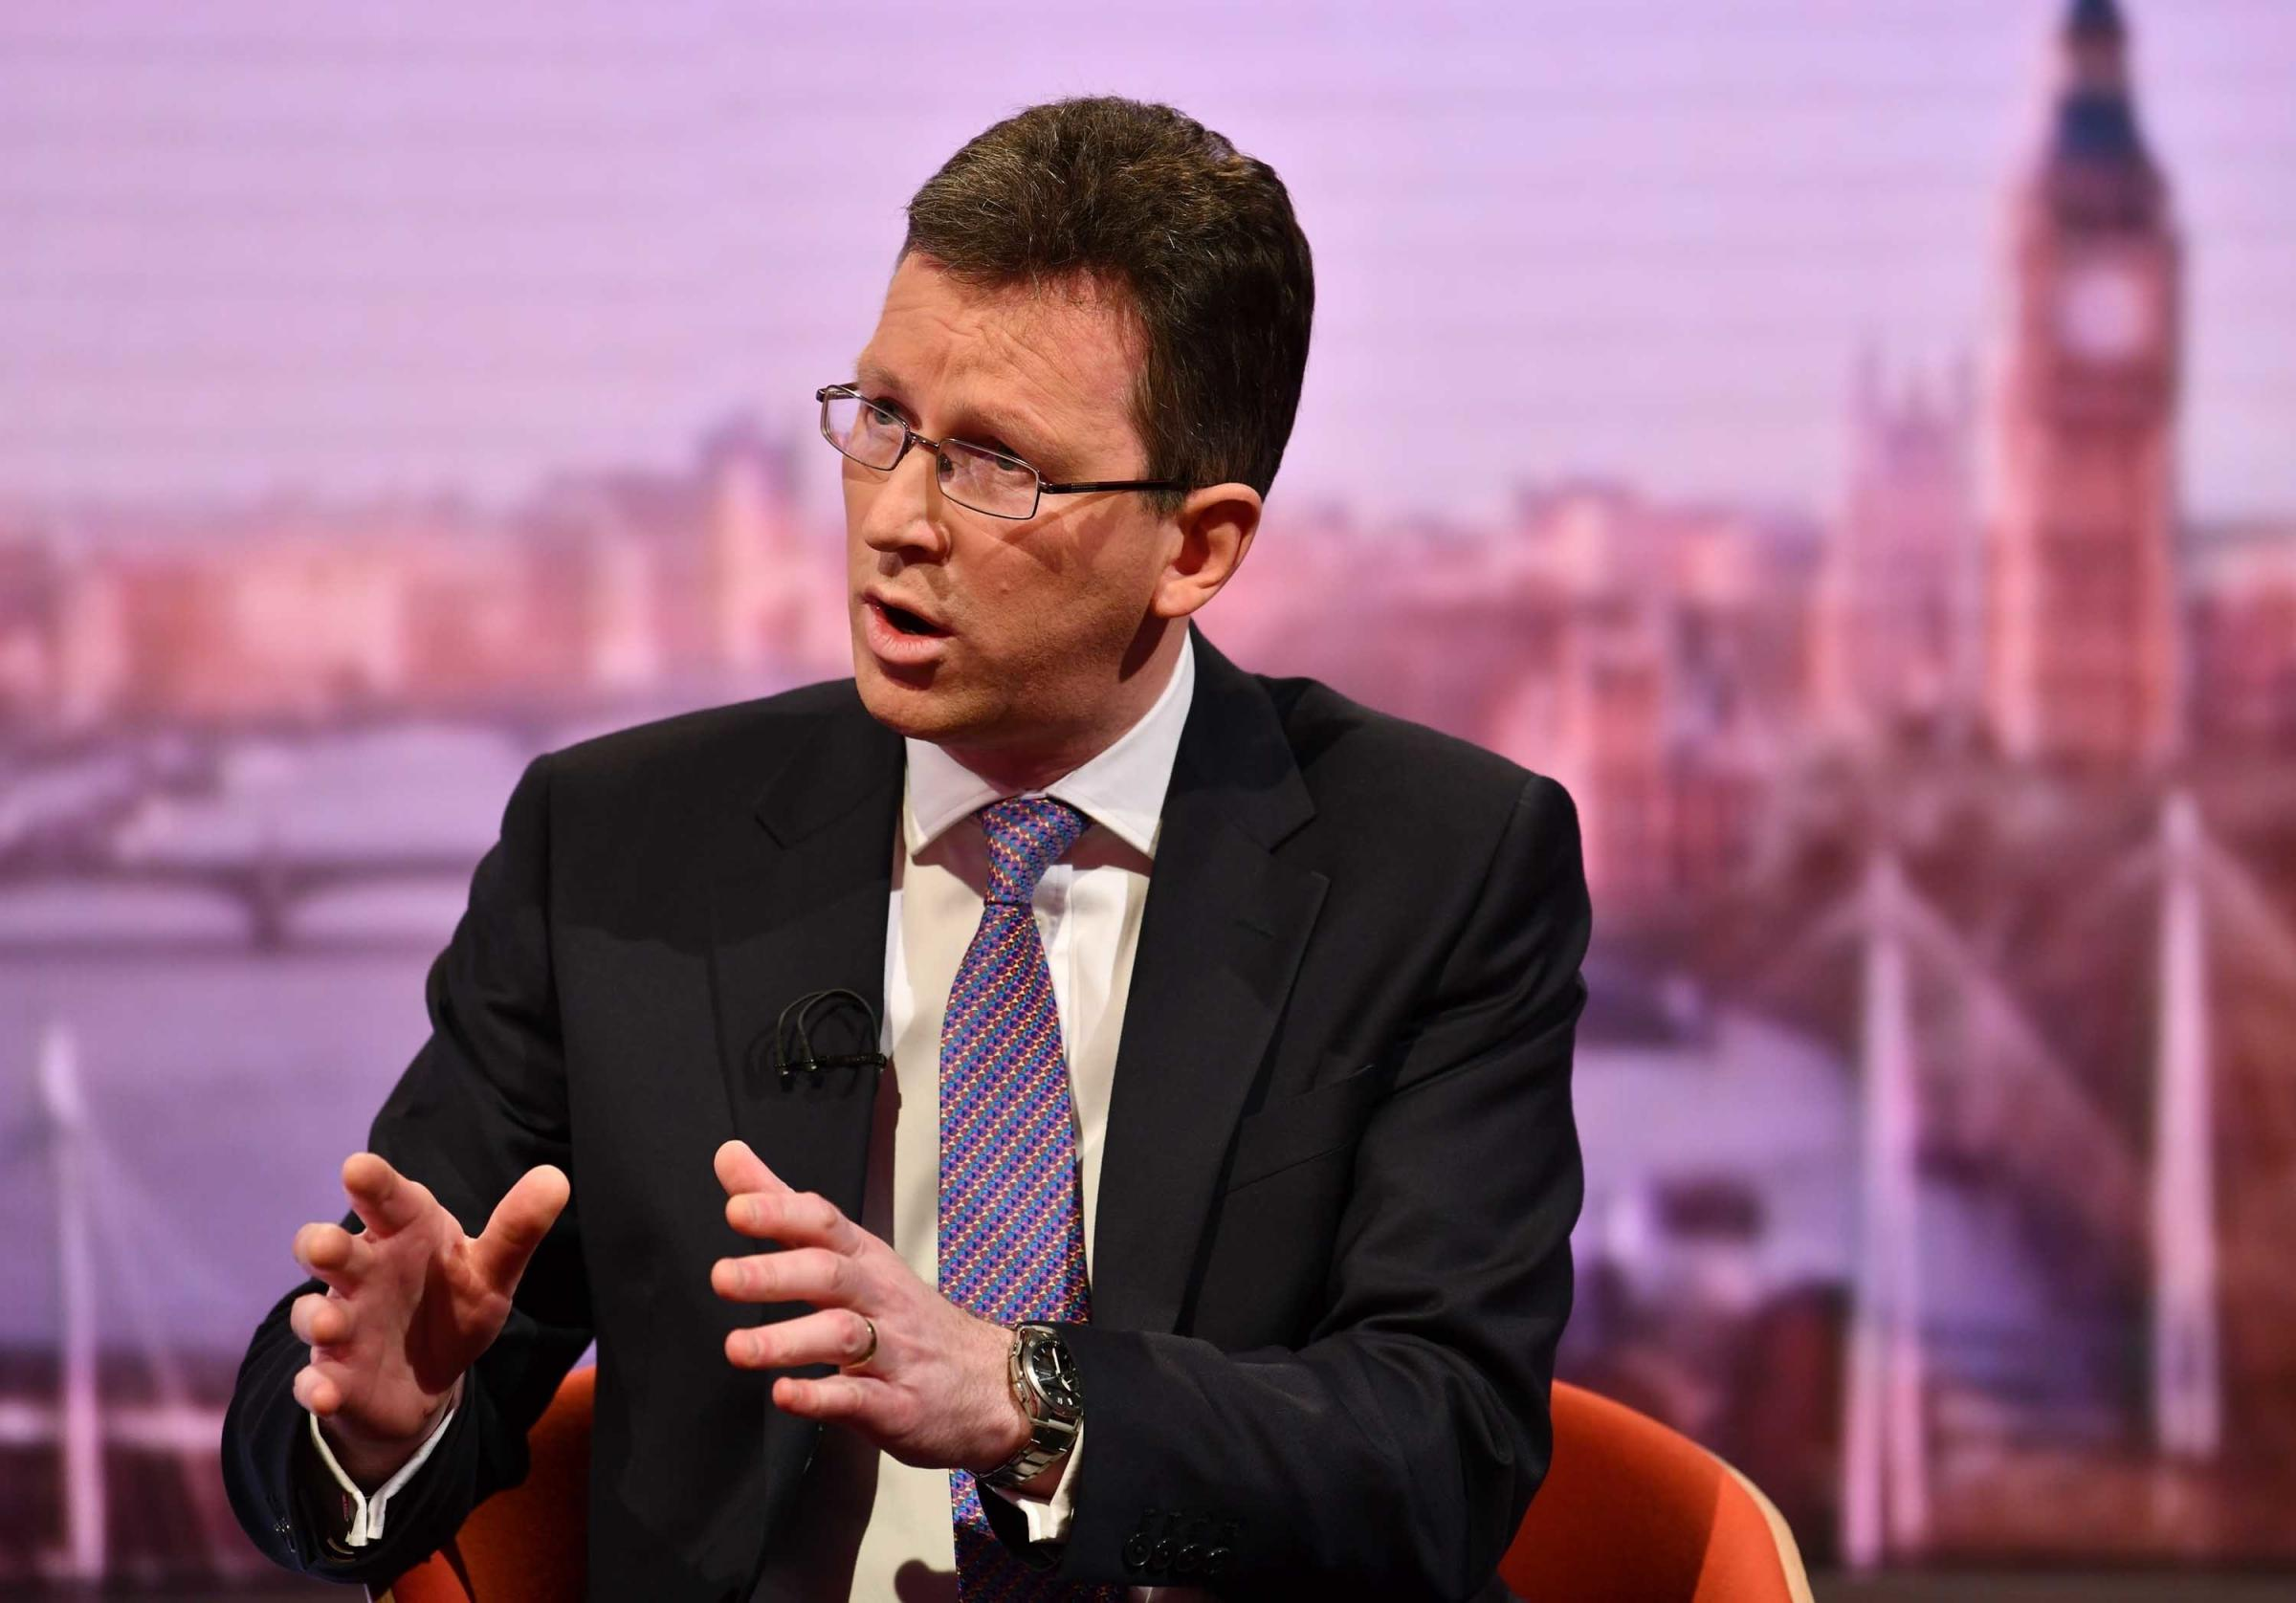 For use in UK, Ireland or Benelux countries only ..BBC handout photo of Culture Secretary Jeremy Wright appearing on the BBC1 current affairs programme, The Andrew Marr Show. PRESS ASSOCIATION Photo. Issue date: Sunday February 17, 2019. See PA story POLI